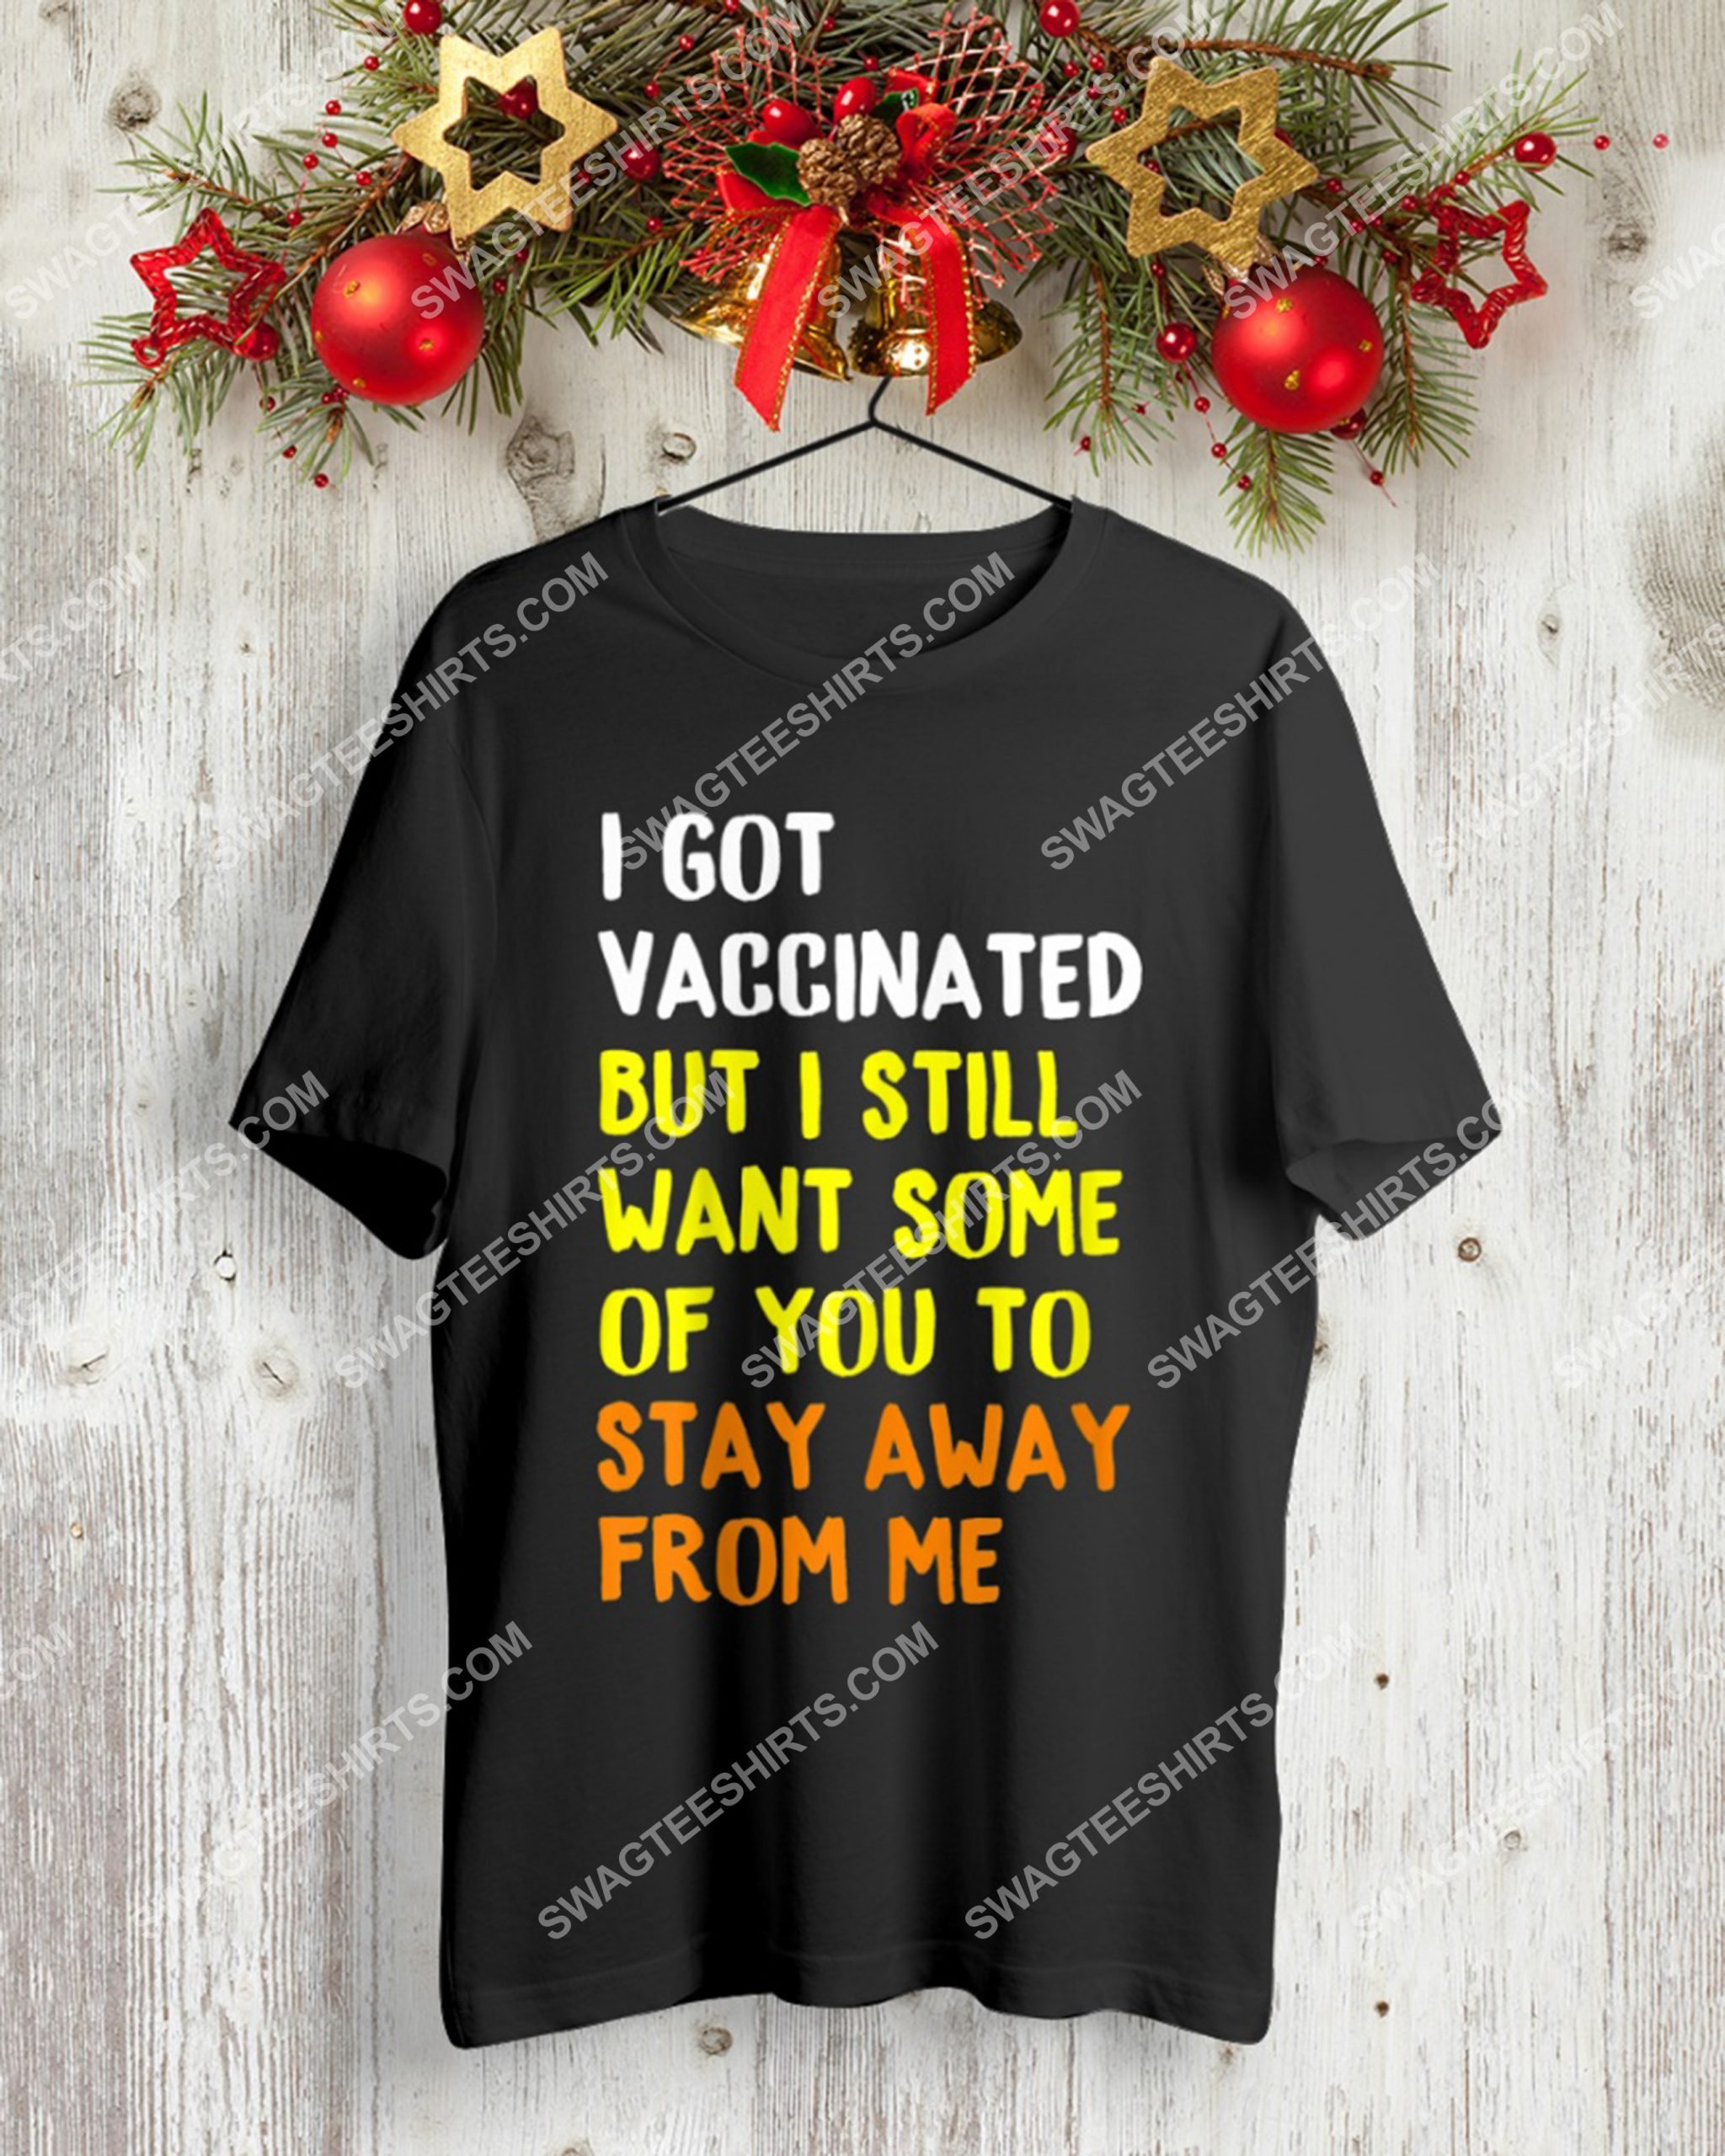 i got vaccinated but i still want some of you to stay away from me shirt 3(1)